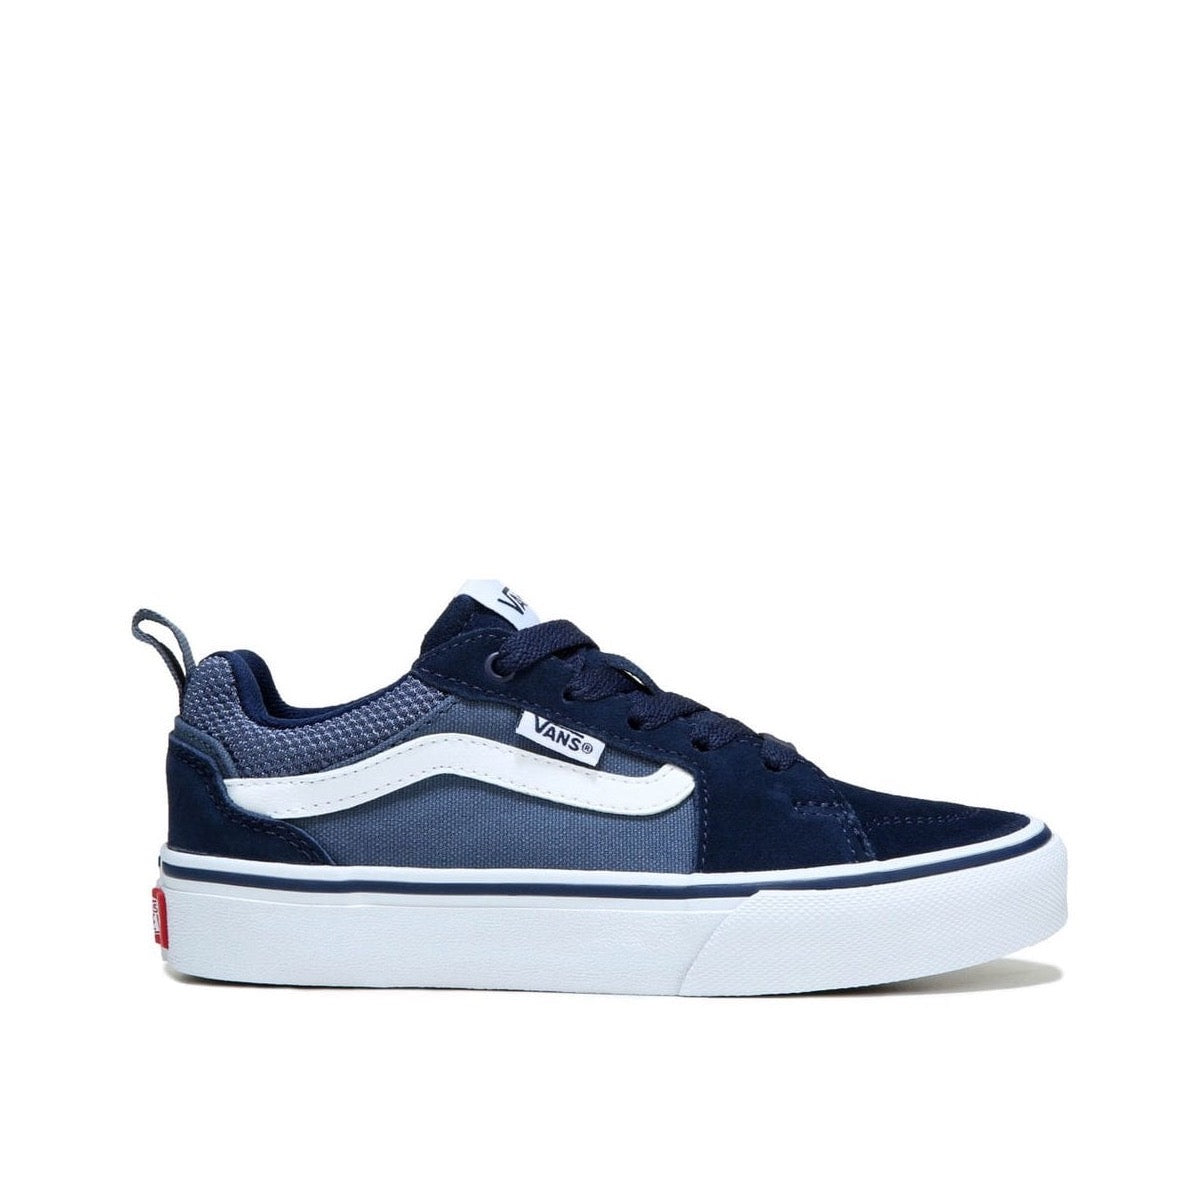 Vans Mens Filmore Suede Canvas Shoe Blue